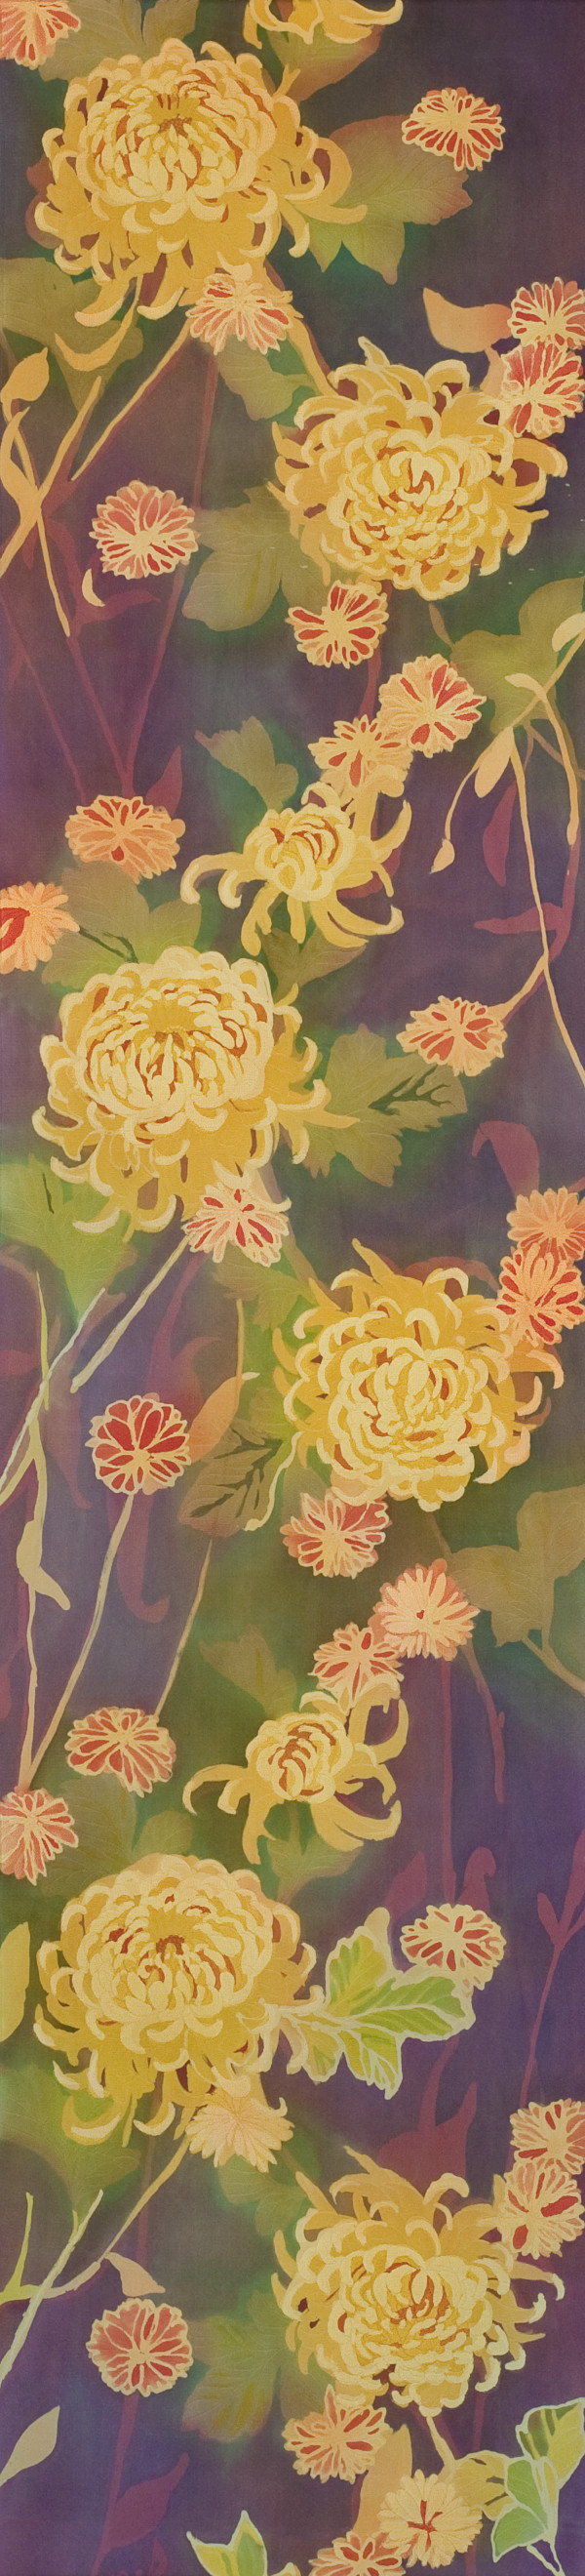 Homage to William Morris II by Mary Edna Fraser